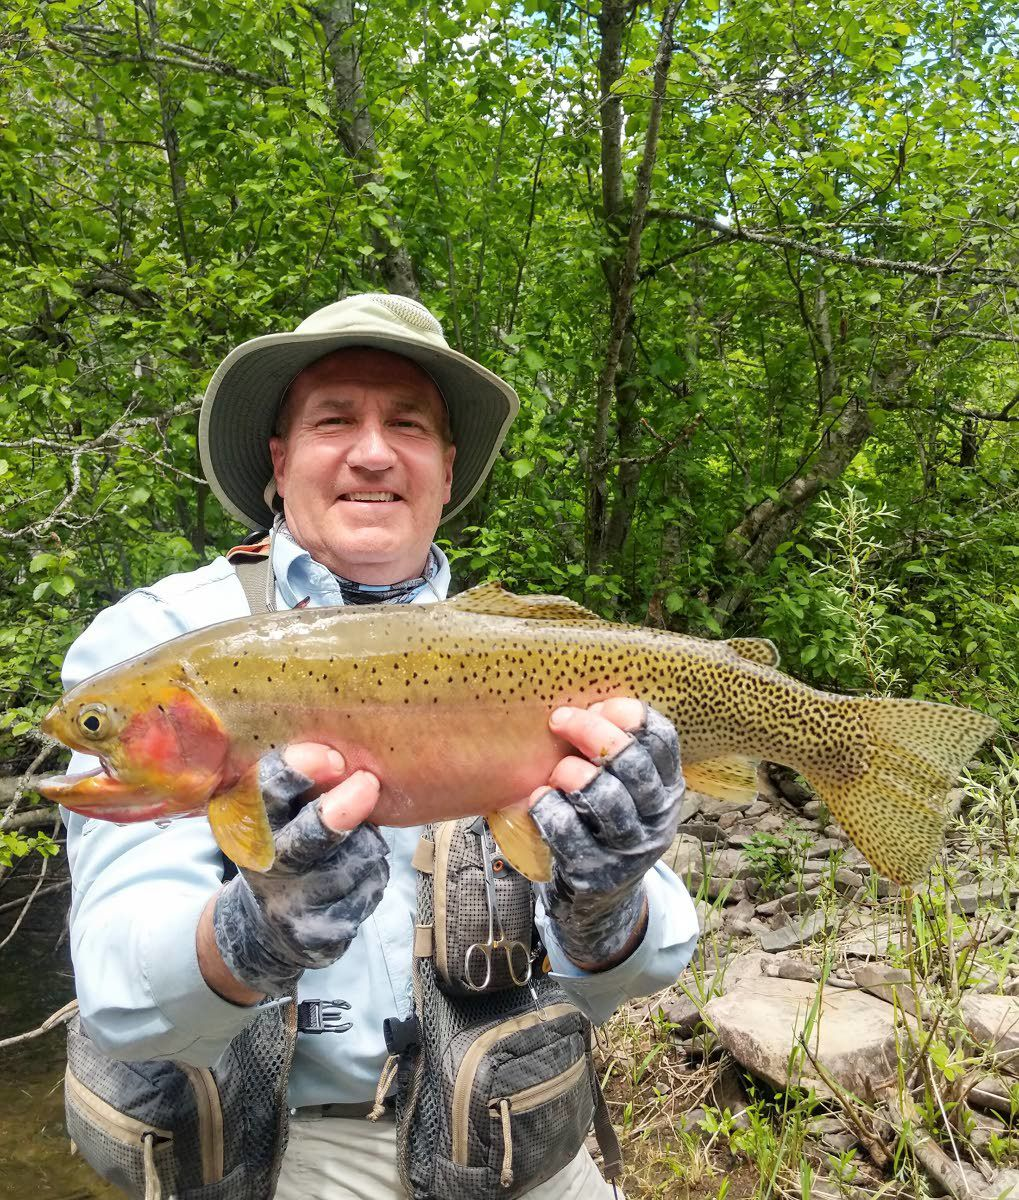 Record westslope cutthroat